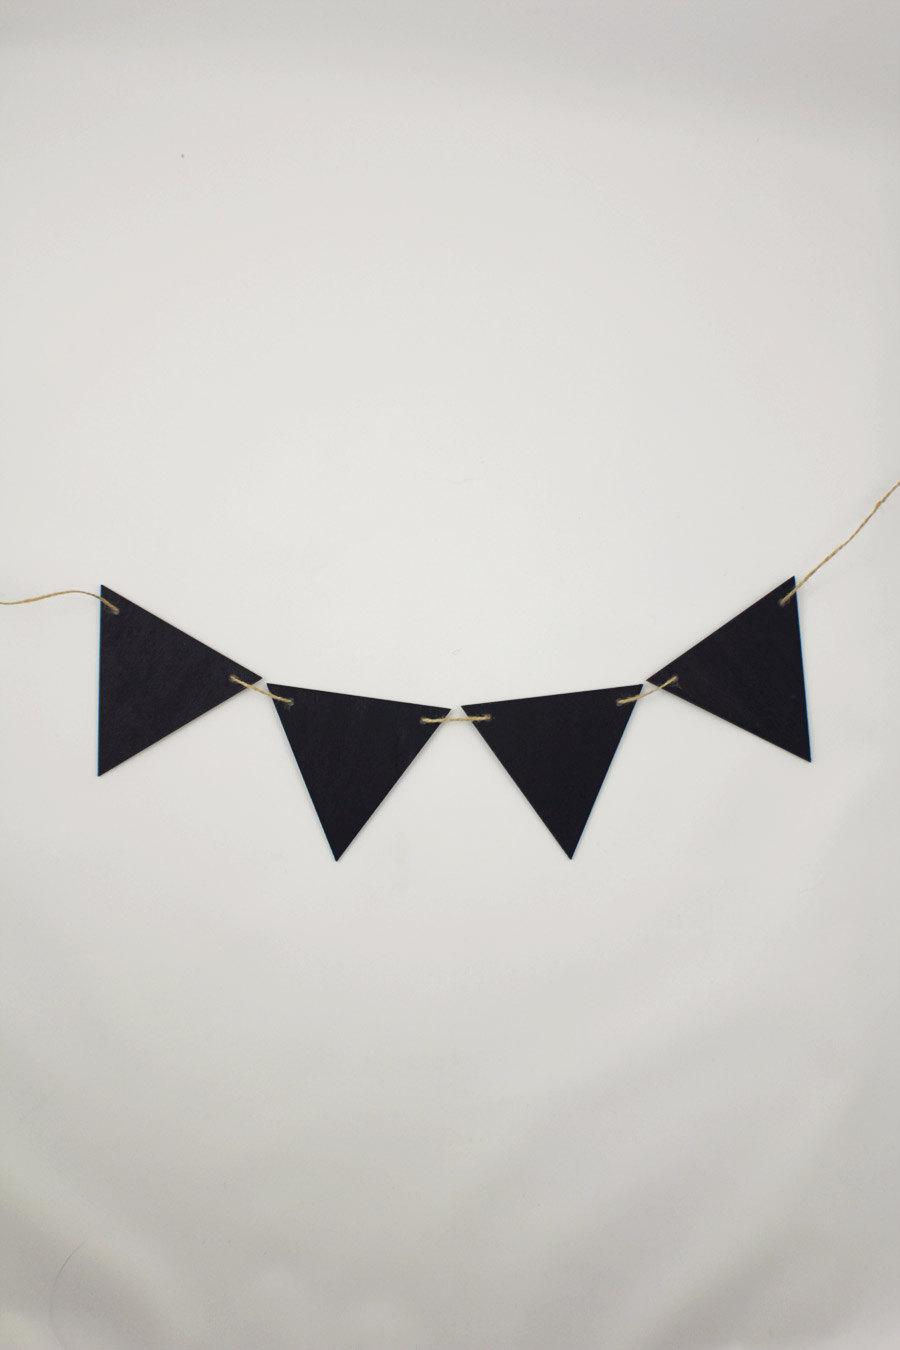 Mariage - Wood Chalkboard Bounty flag banner - 6 flags - Engagement Prop - Wedding Signage -  Buffet Props -  Settings